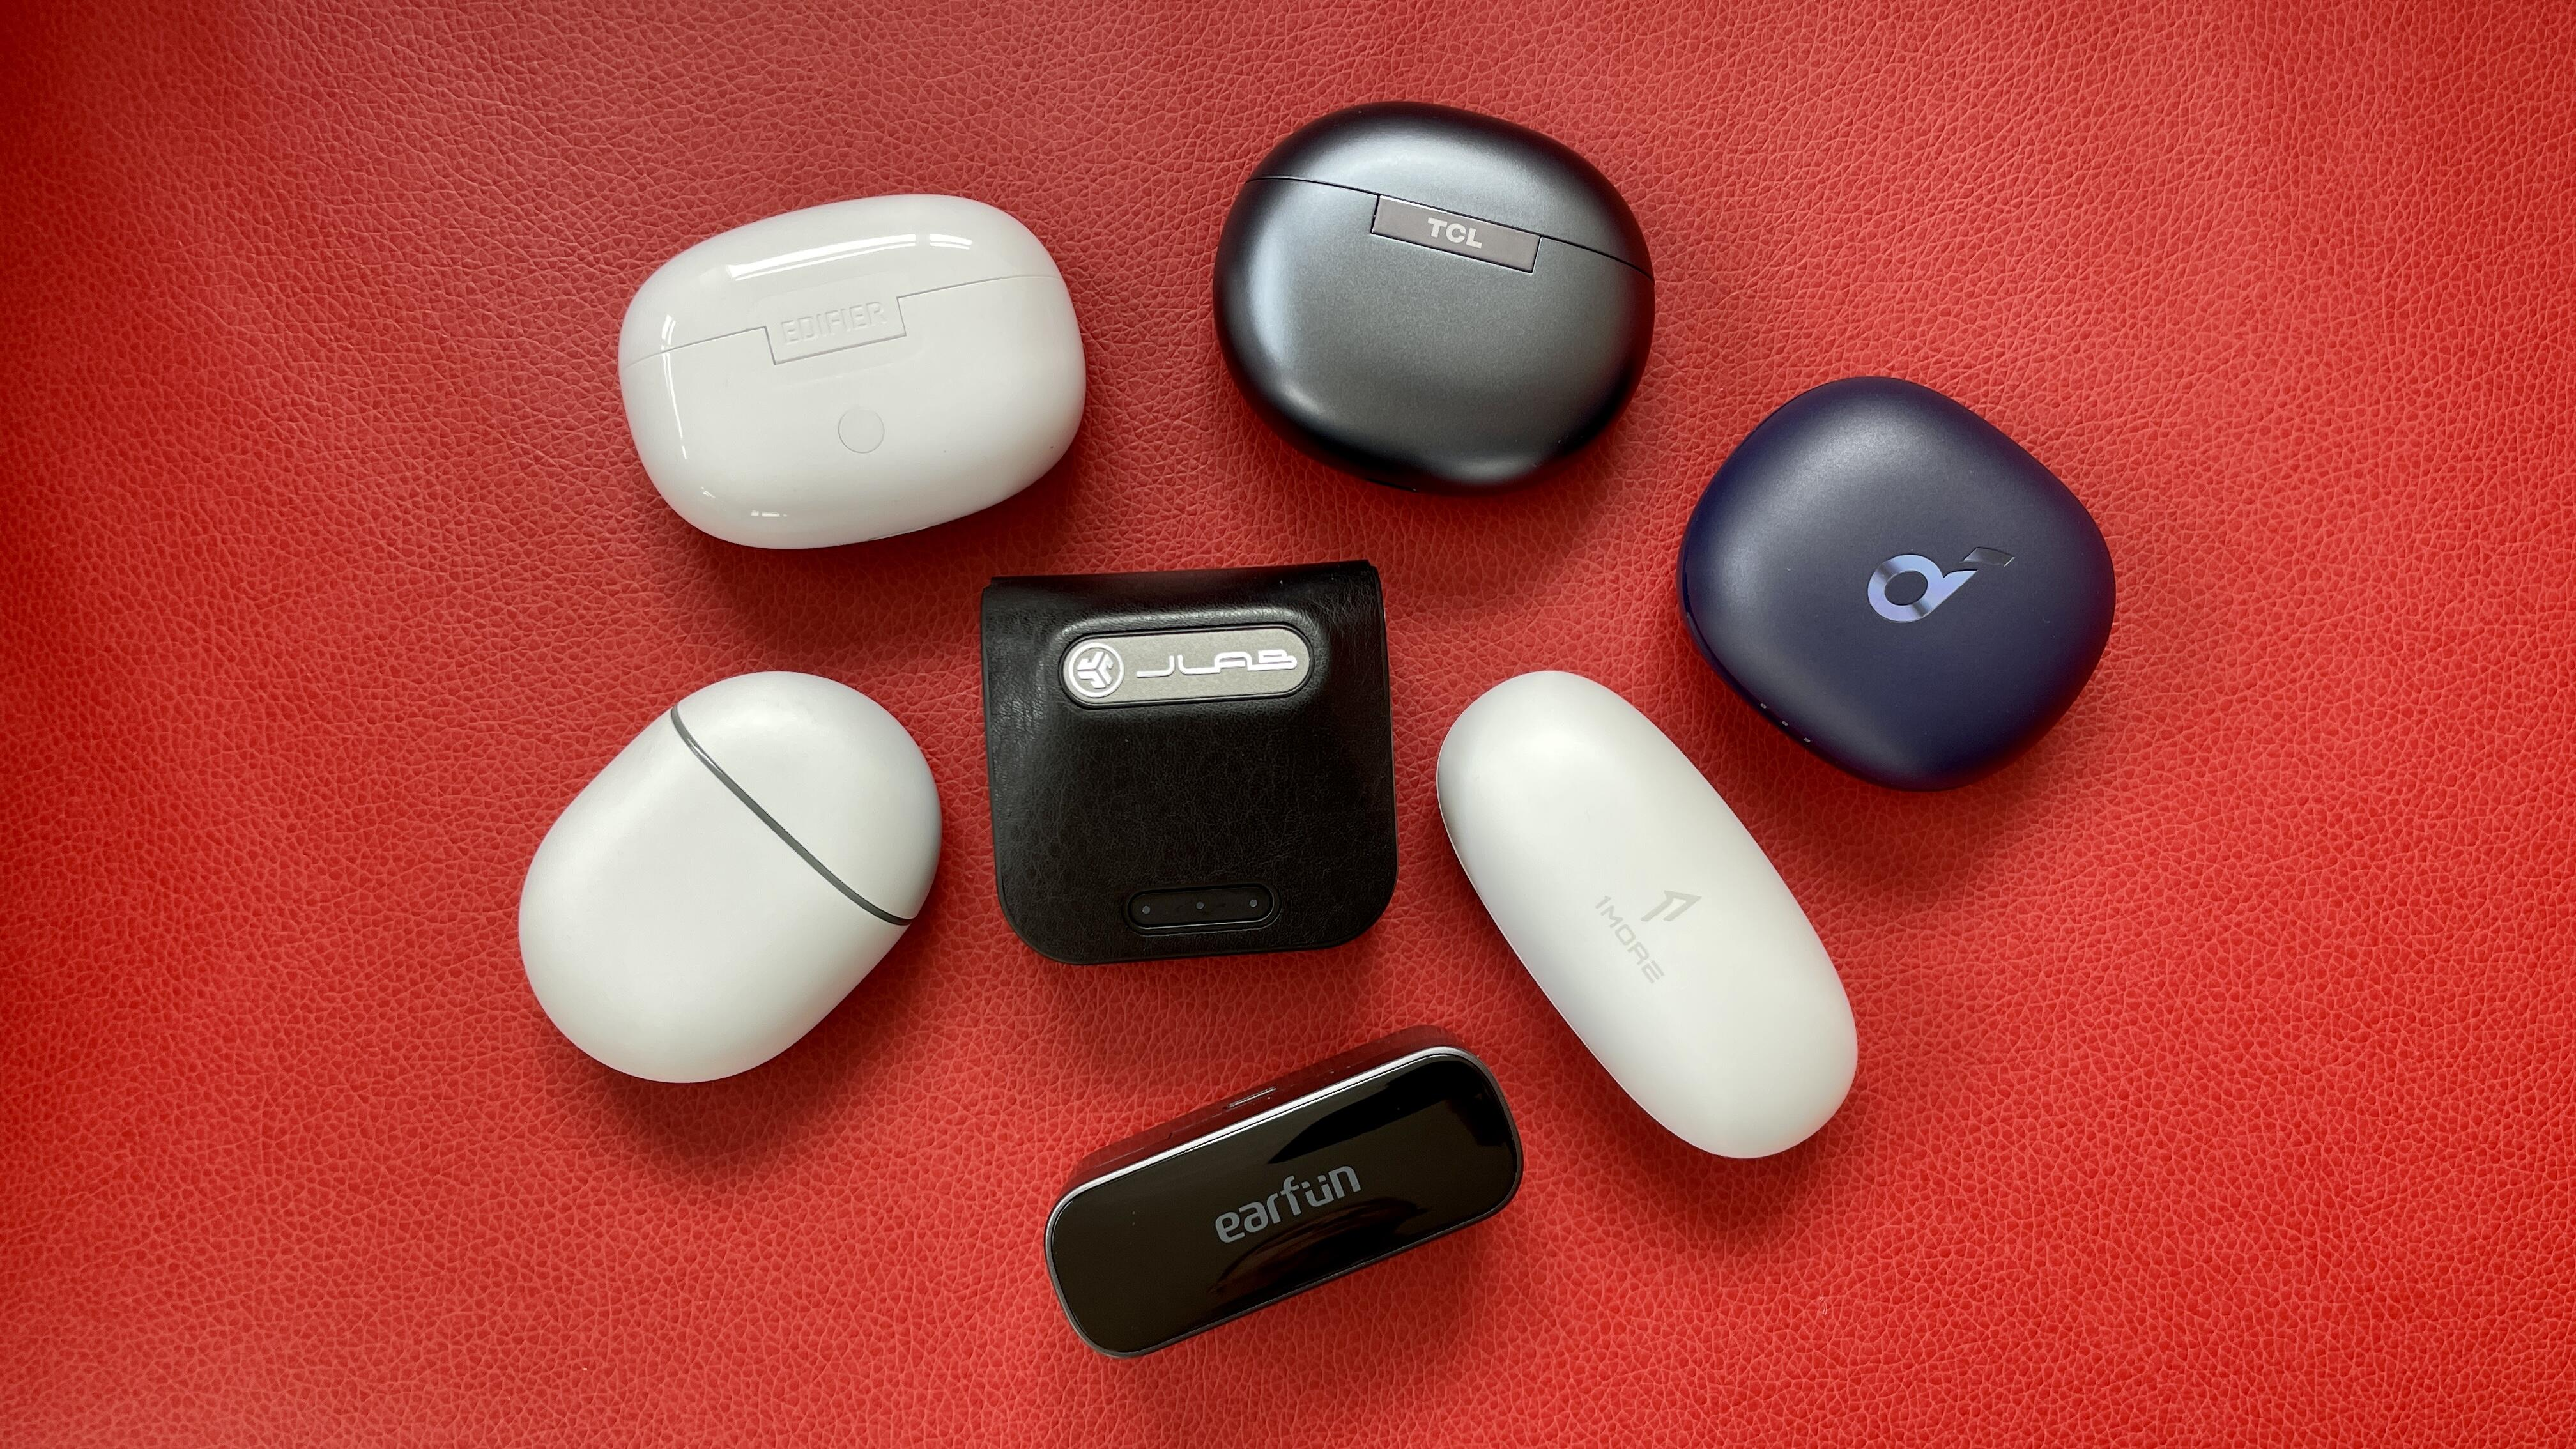 Best cheap true-wireless earbuds in 2021: Top AirPods alternatives for $100 or less